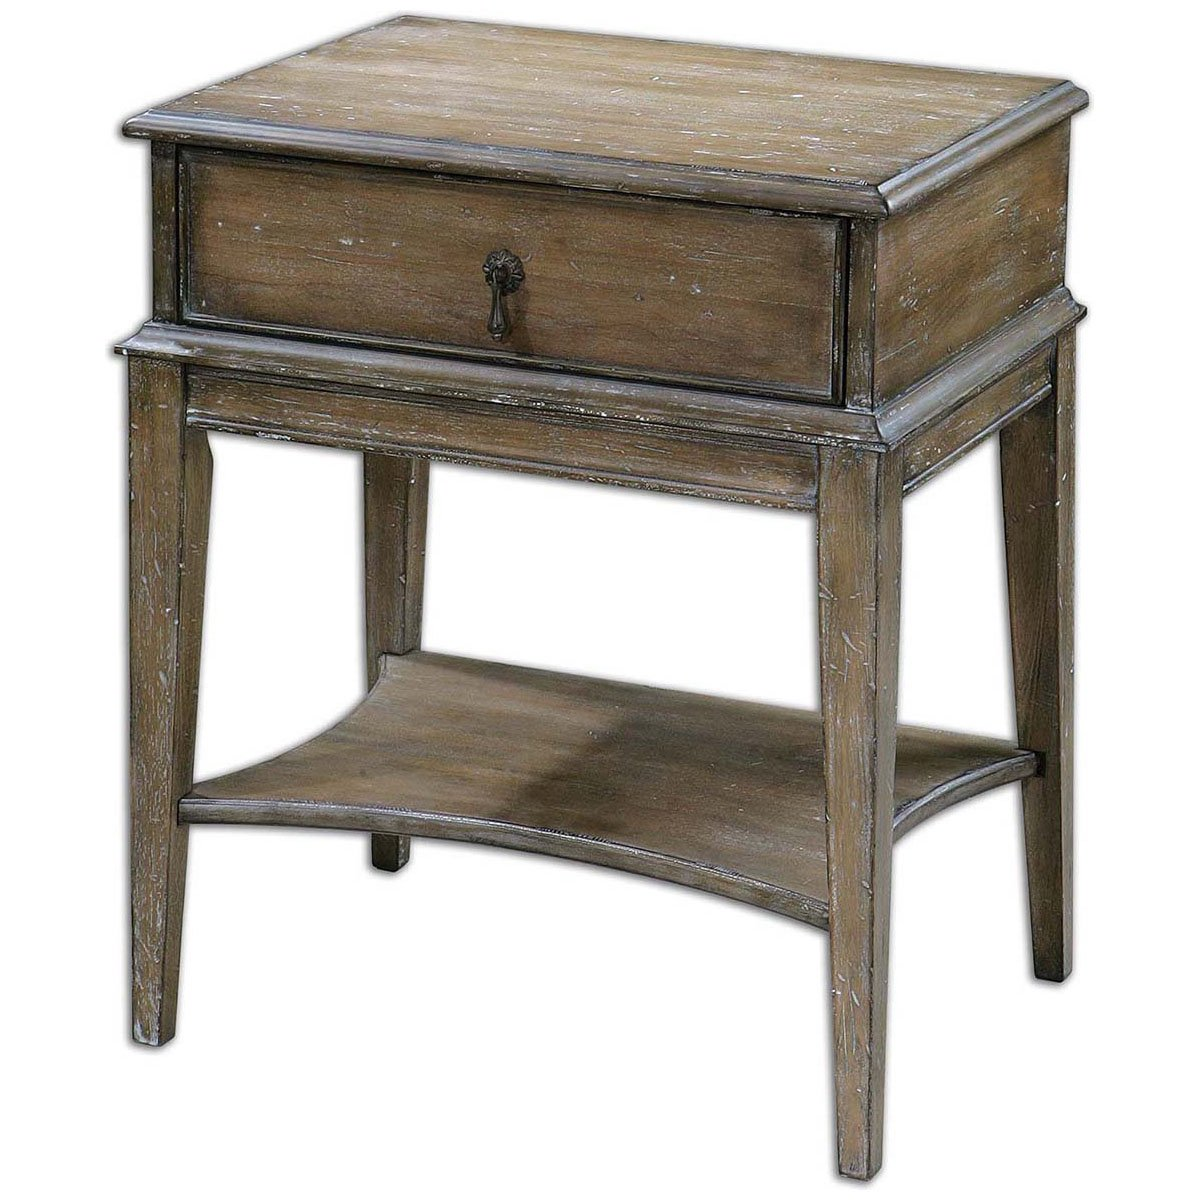 Amazon.com: Uttermost 24312 Hanford Weathered Accent Table: Kitchen U0026 Dining